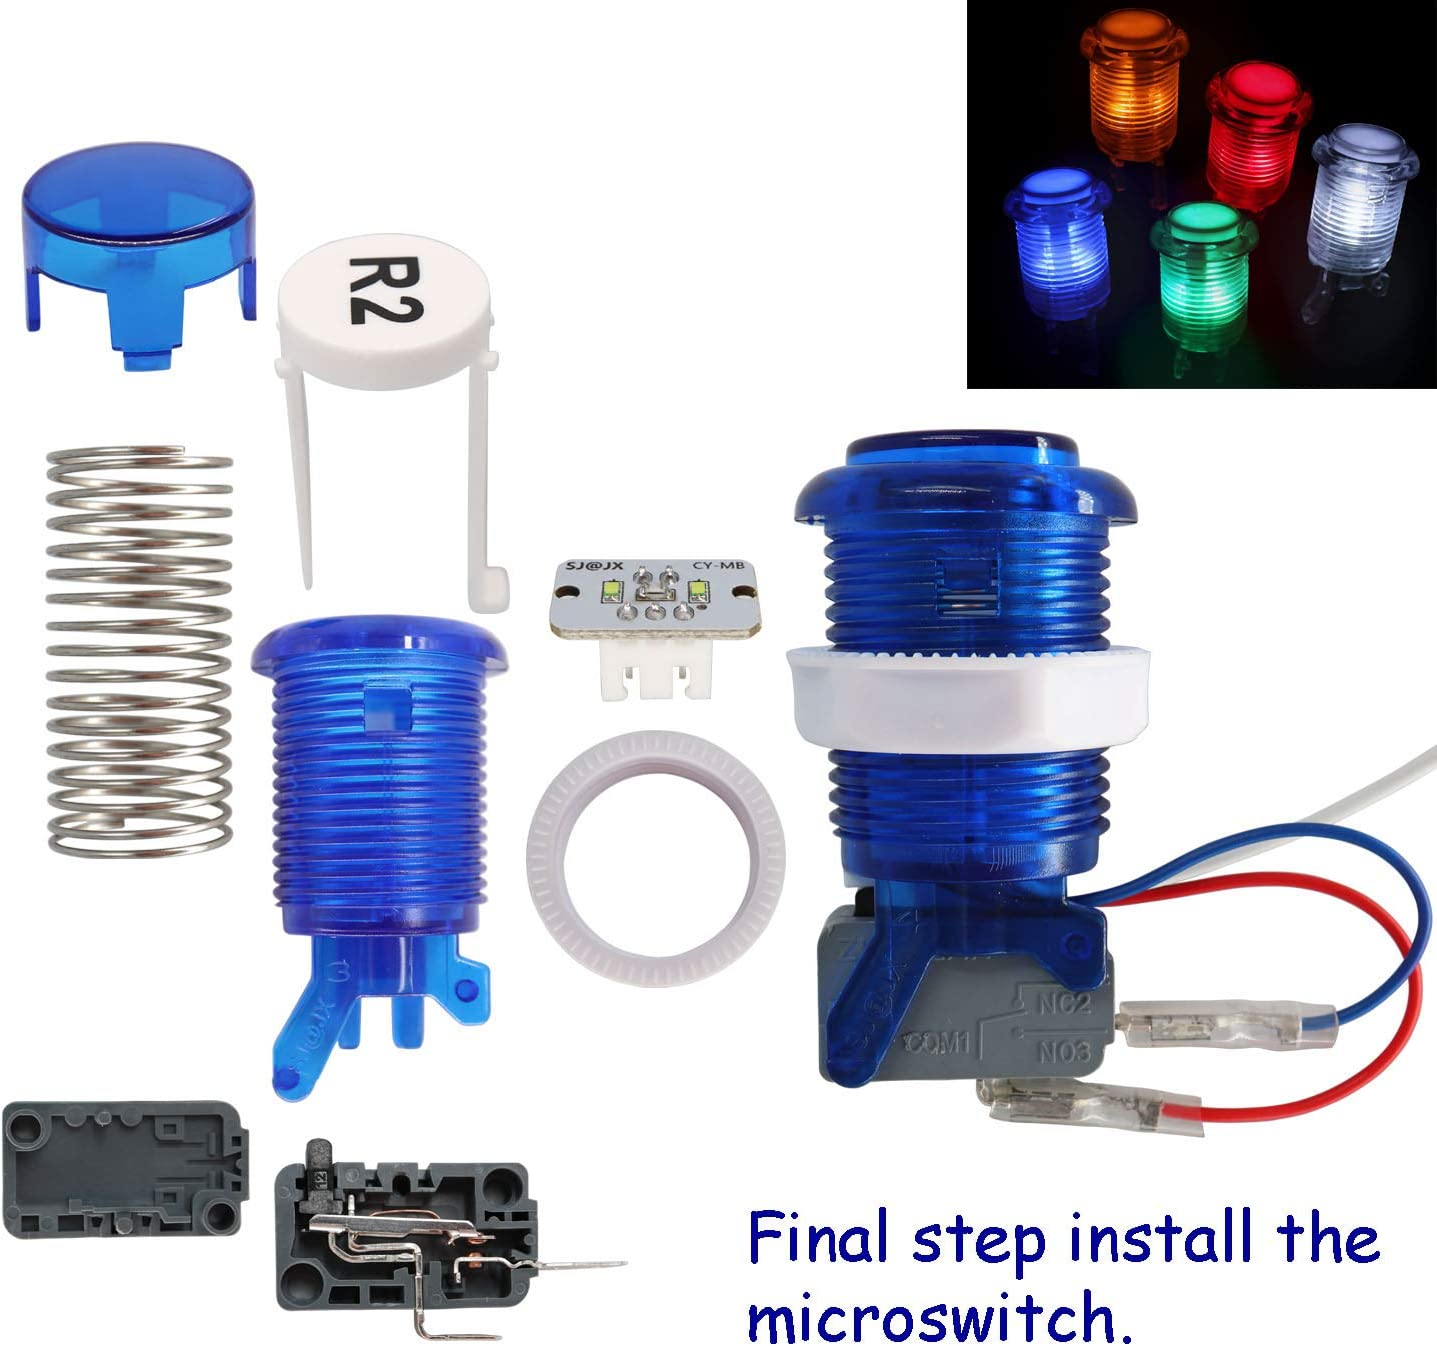 SJ@JX Arcade Game Stick DIY Kit Buttons with Logo LED 8 Way Joystick USB Encoder Cable Controller for PC MAME Raspberry Pi Color Mix green